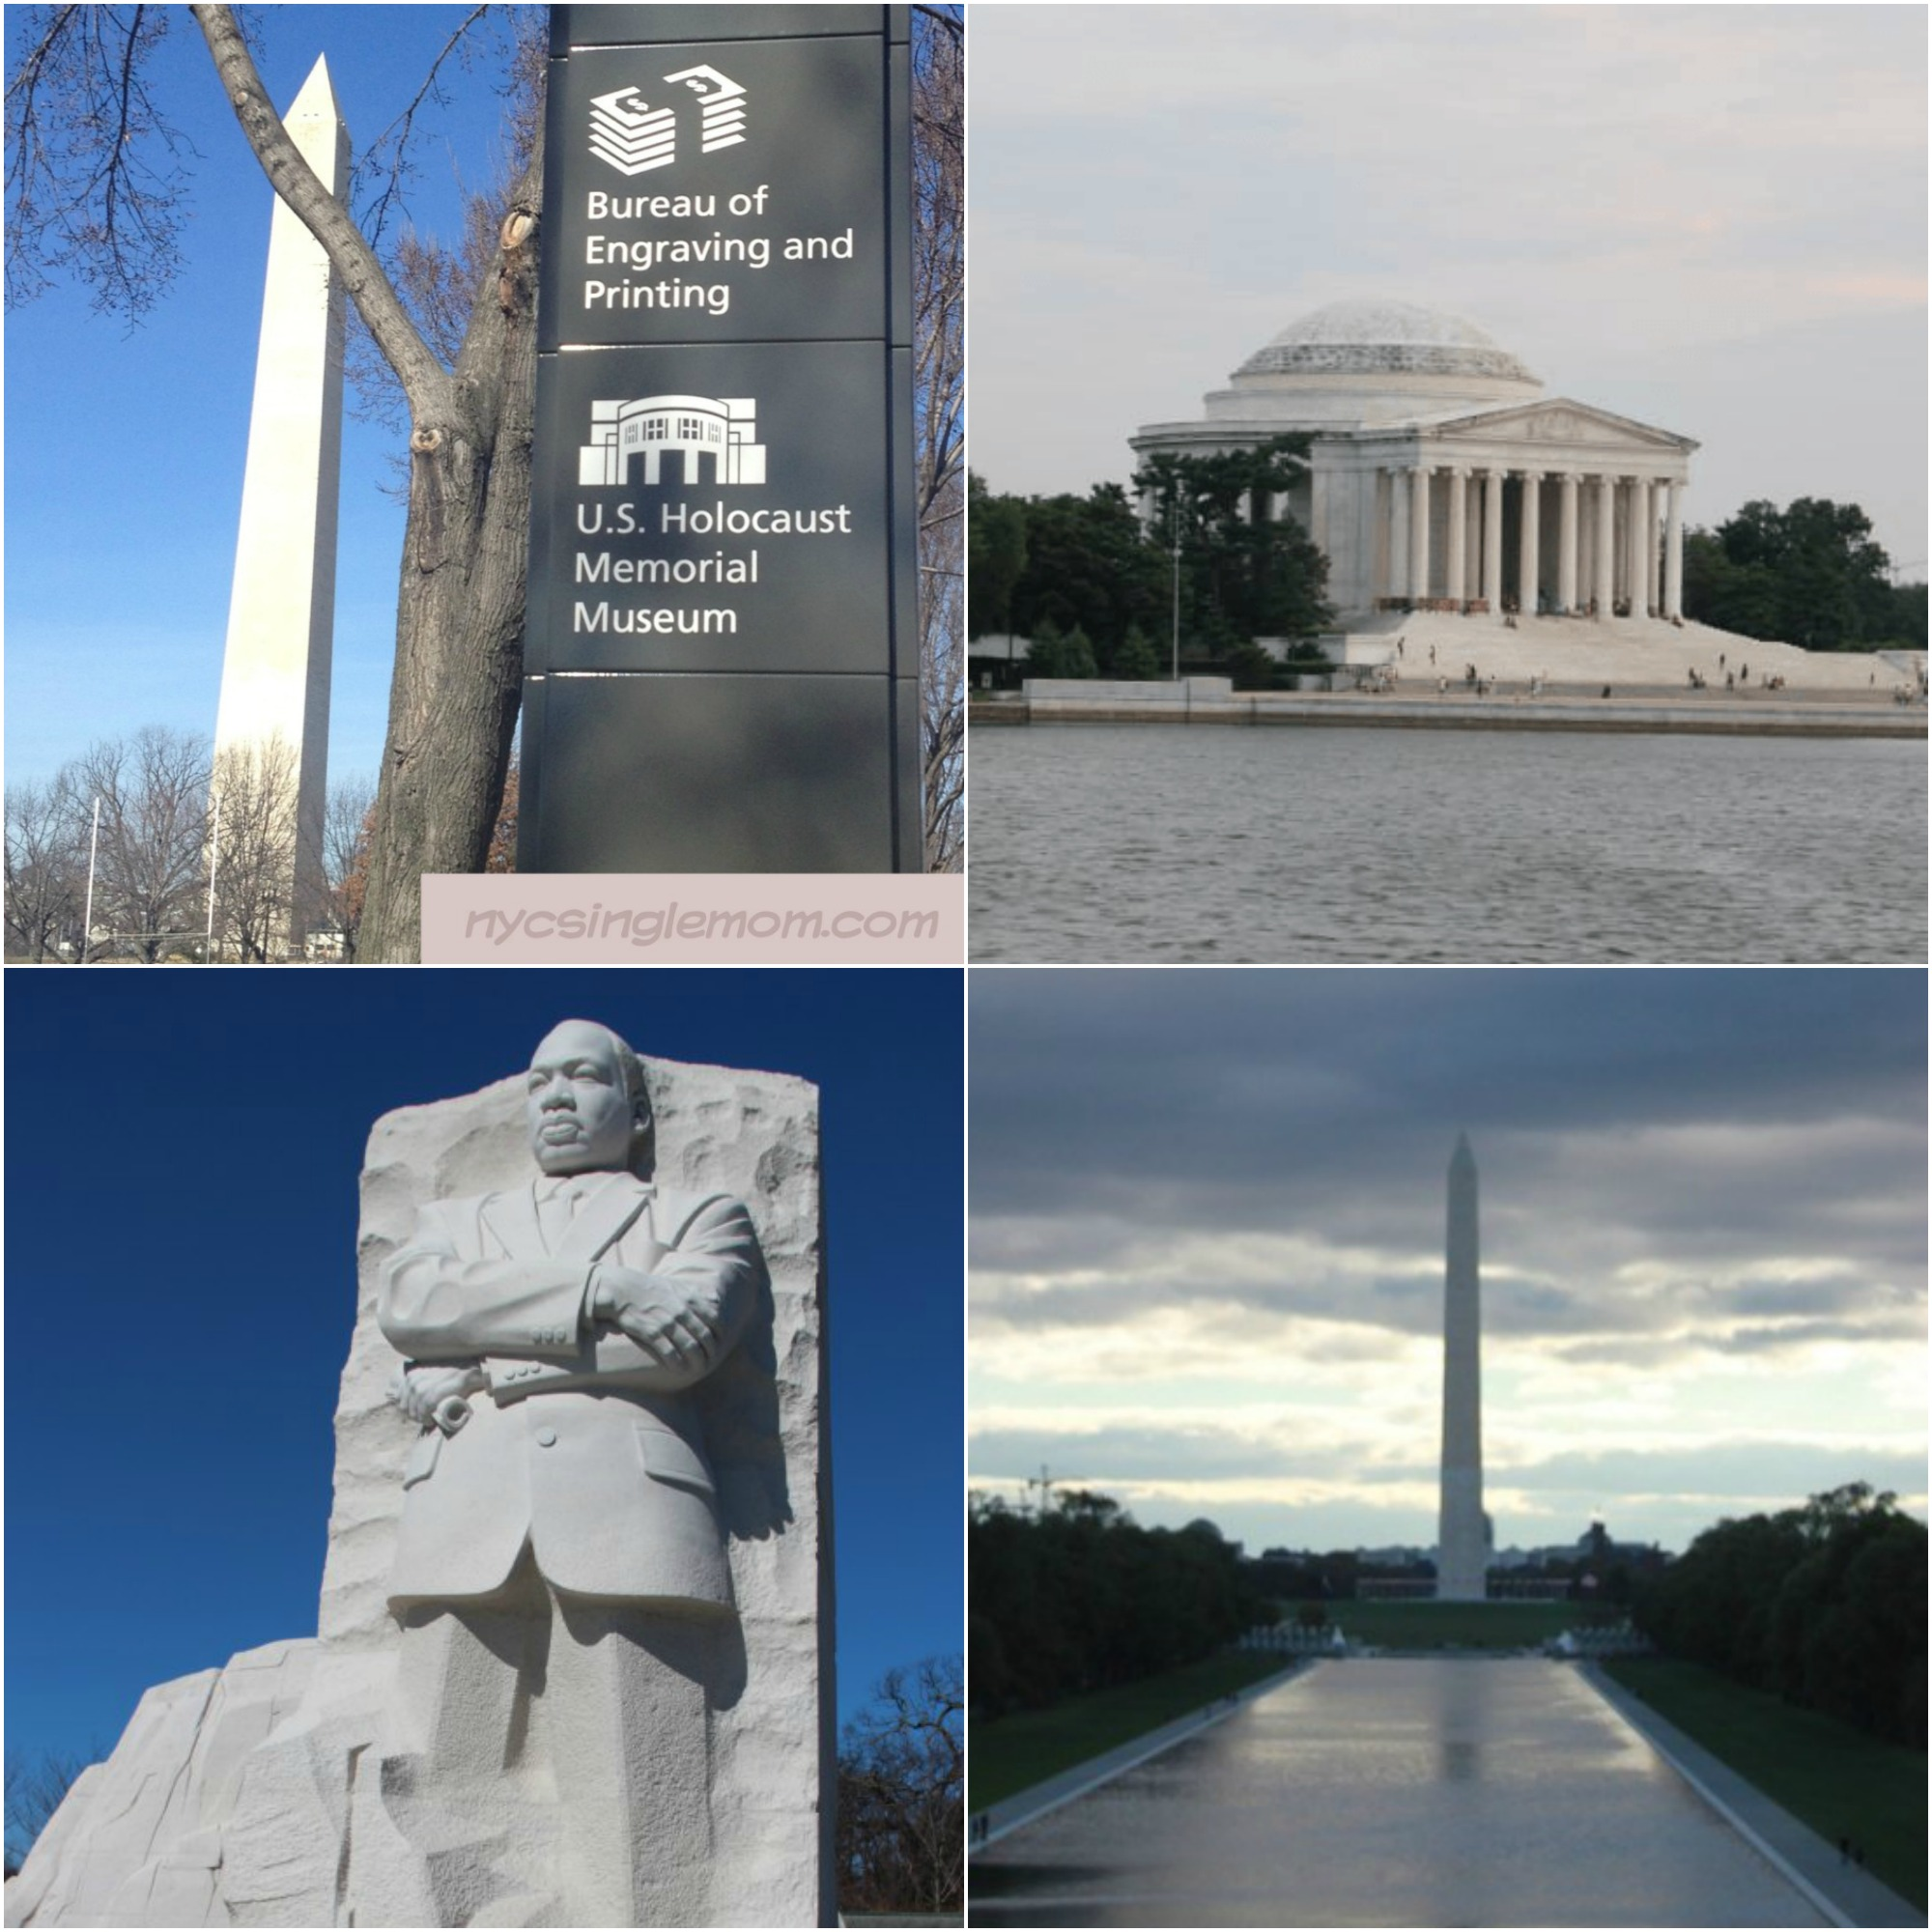 25 must see activities in washington dc nyc single mom for Must see nyc attractions